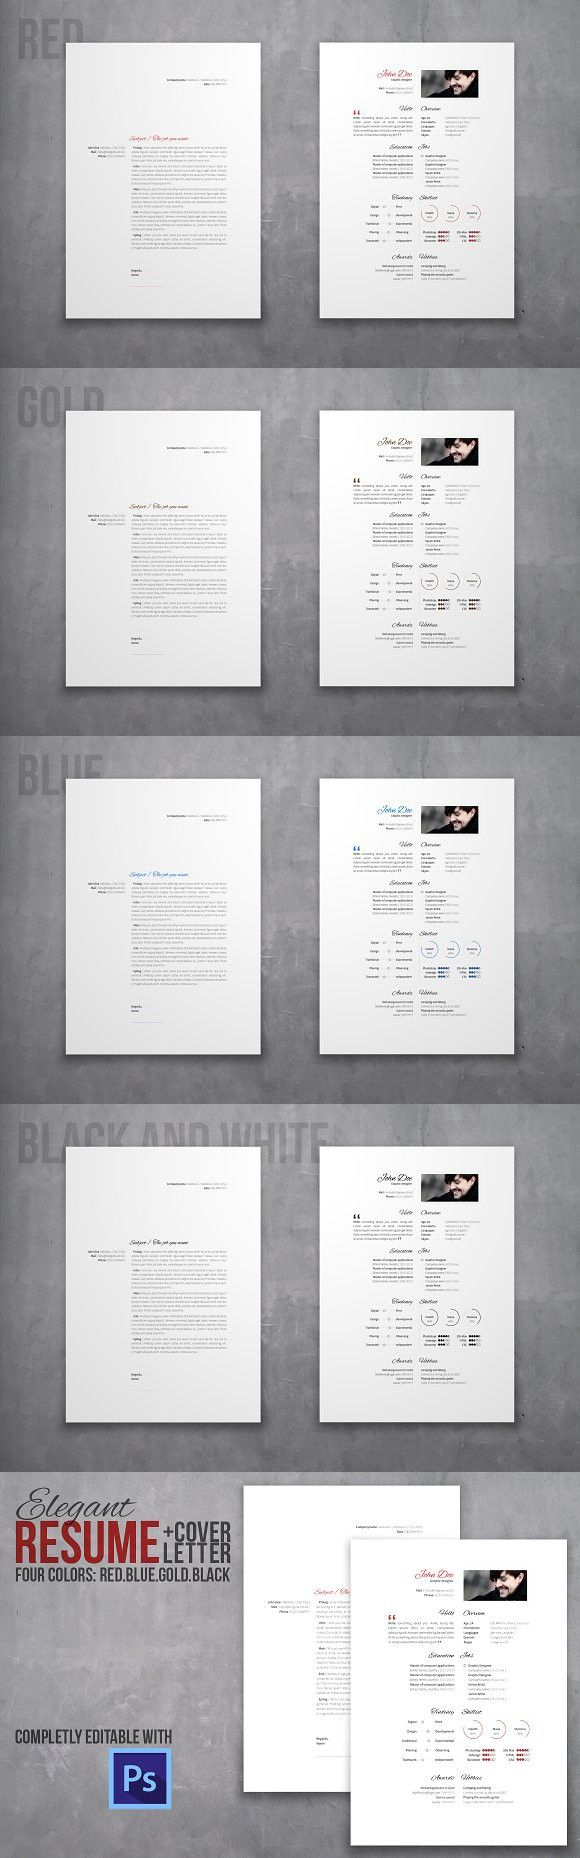 Resume and cover letter set 817 best